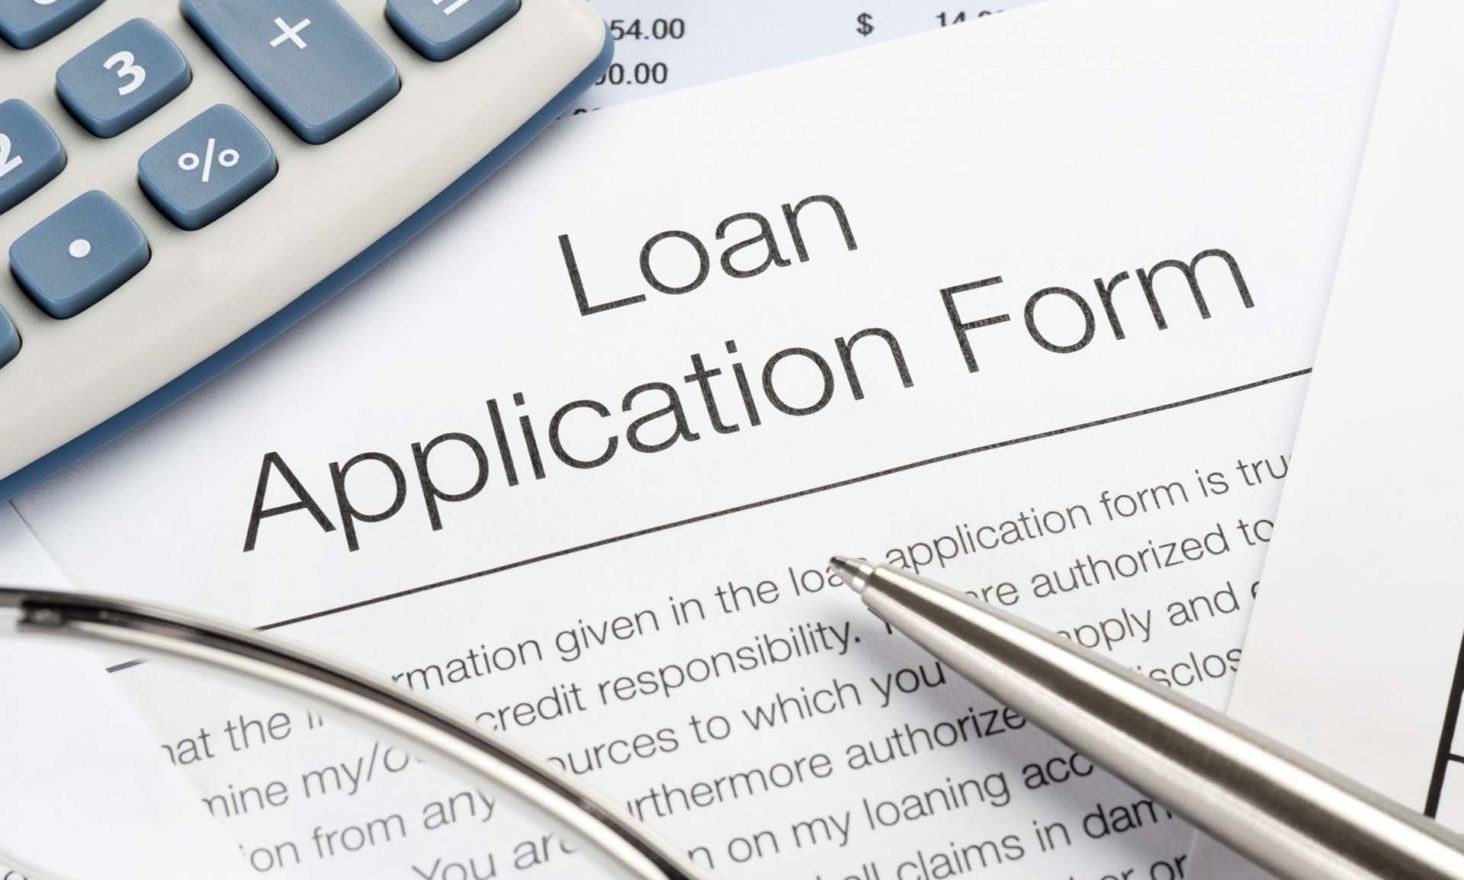 Immigrants: is it Possible to Get a Loan if You are New?